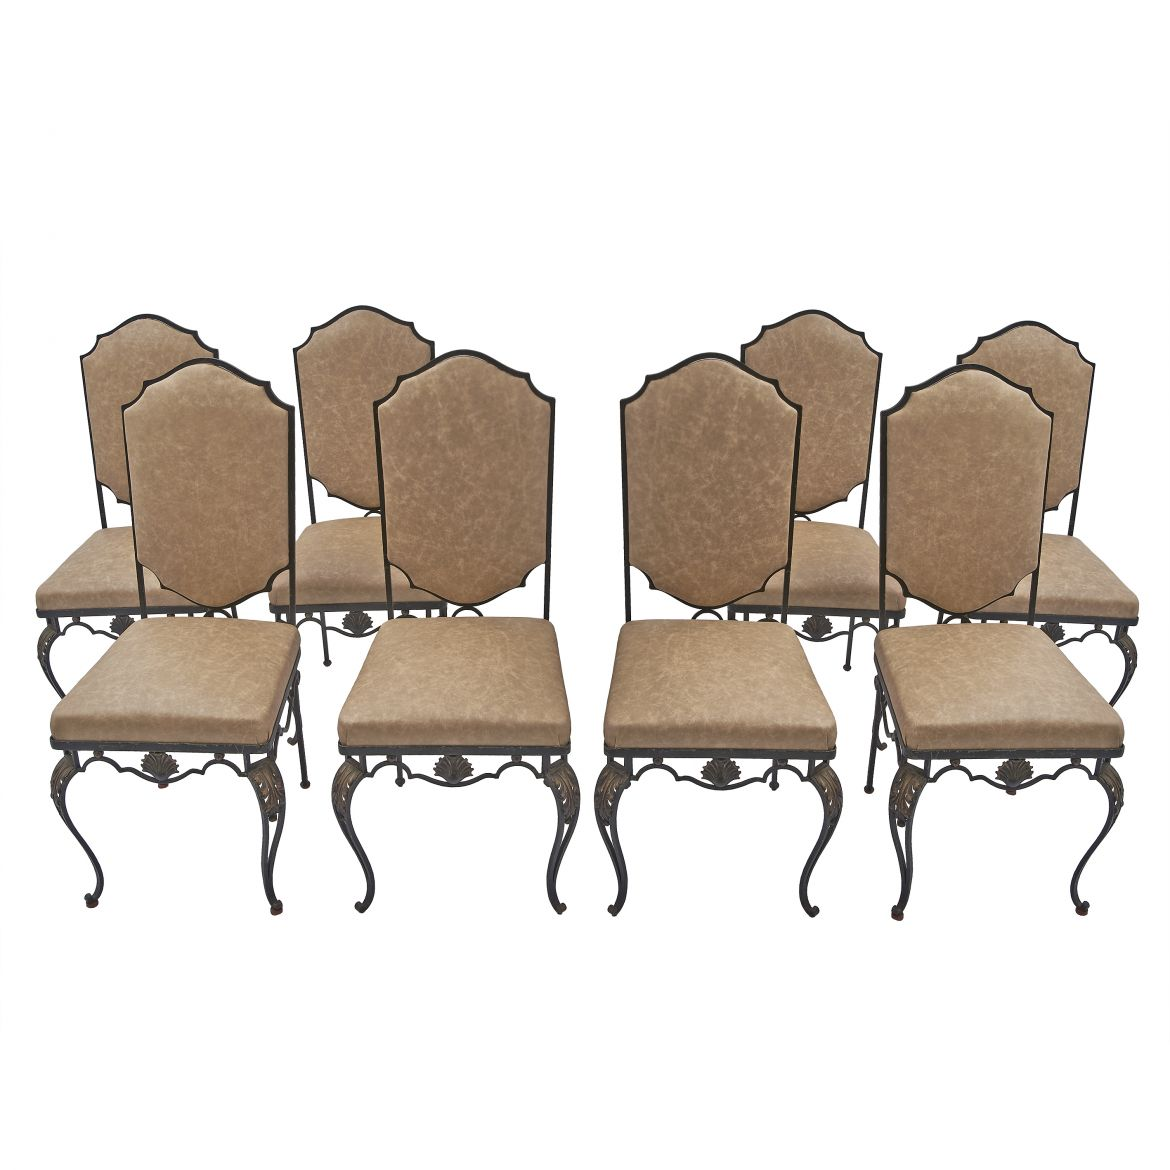 Eight Wrought Iron Chairs